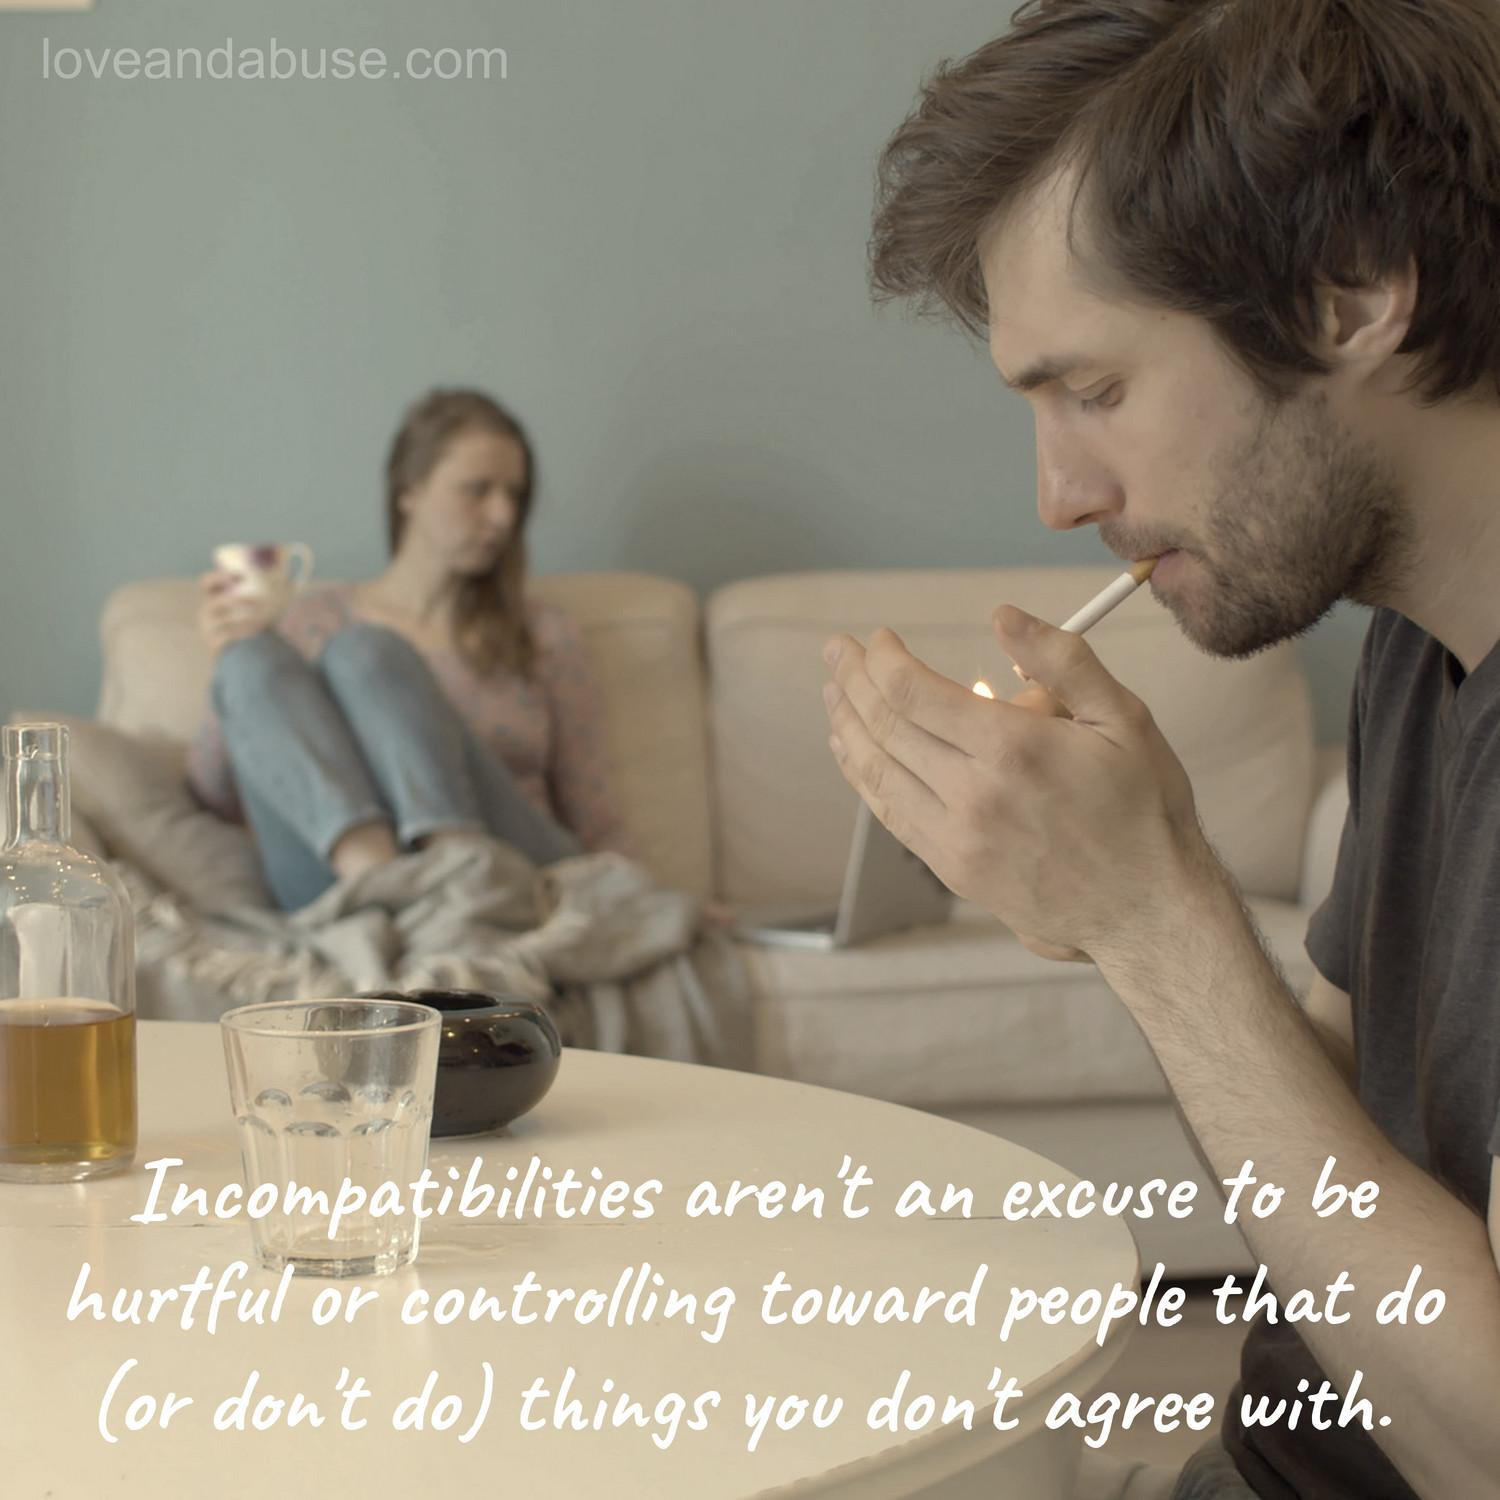 How incompatibility can lead to hurtful and emotionally abusive behavior